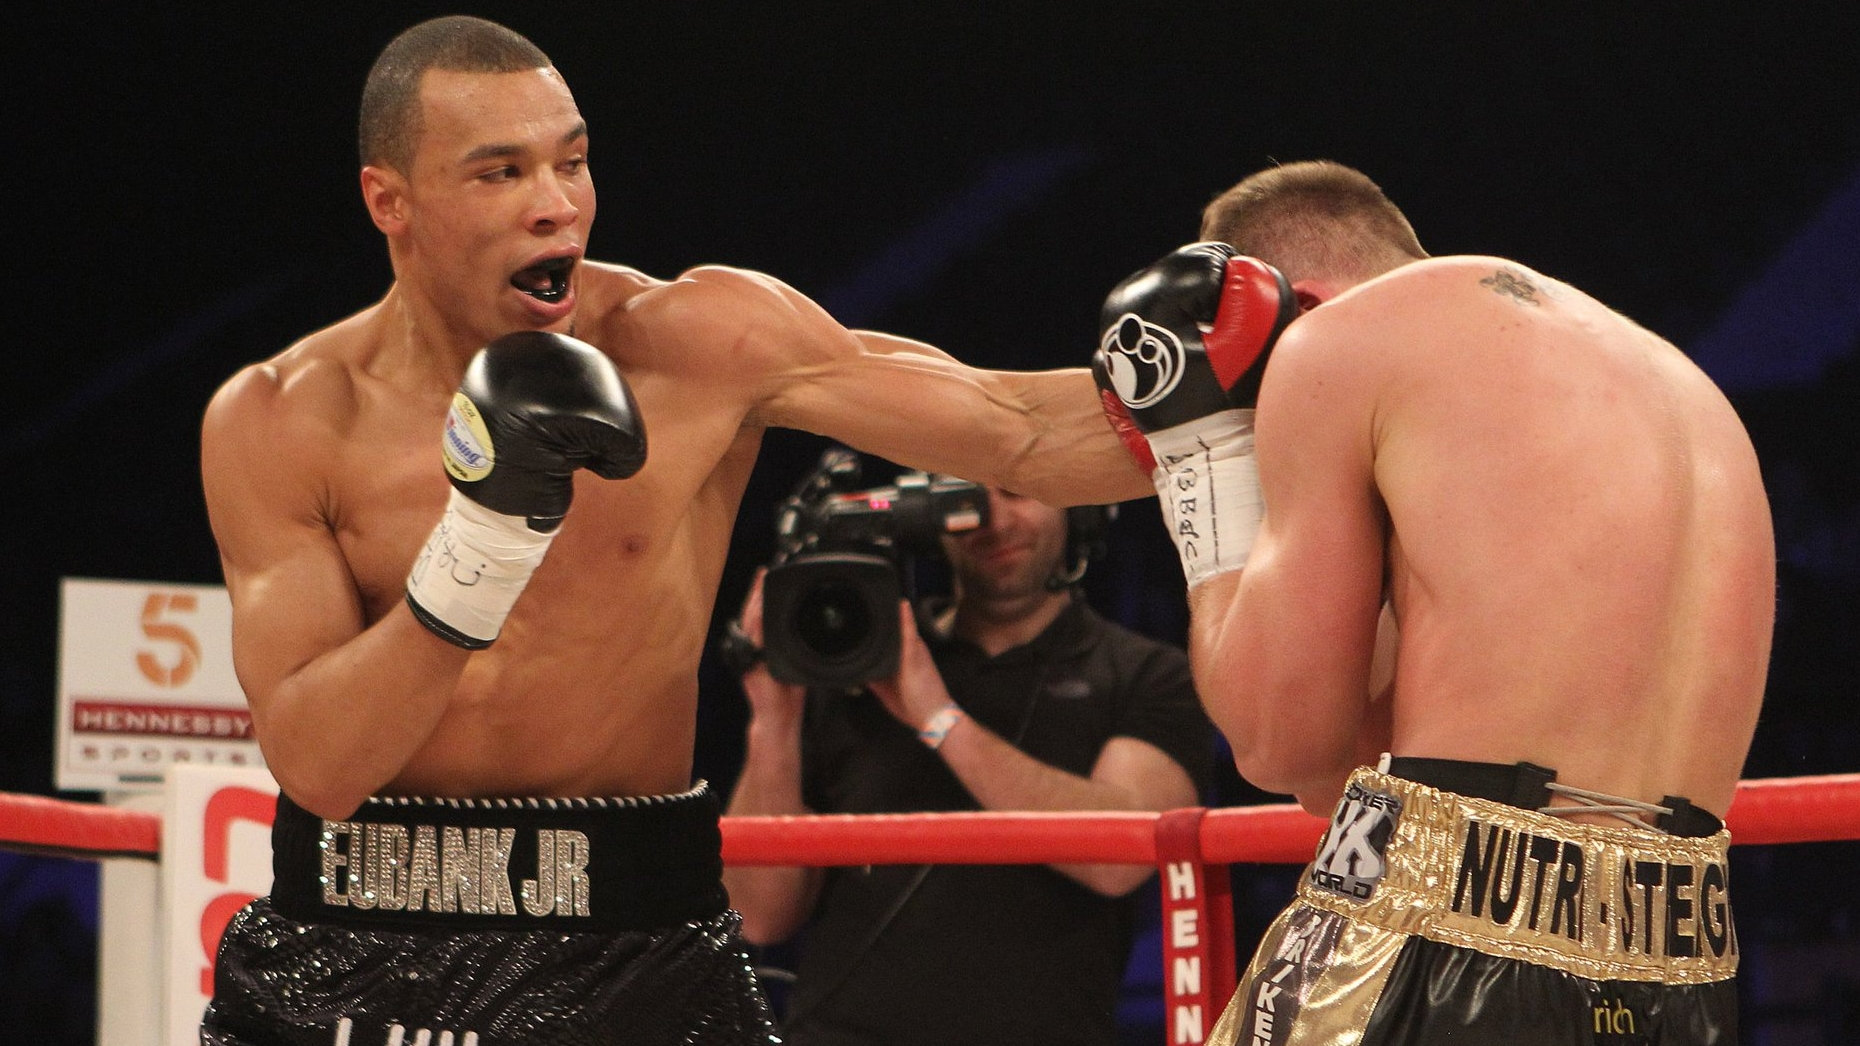 Watch Groves v Eubank Jr fight: Boxing live stream has now